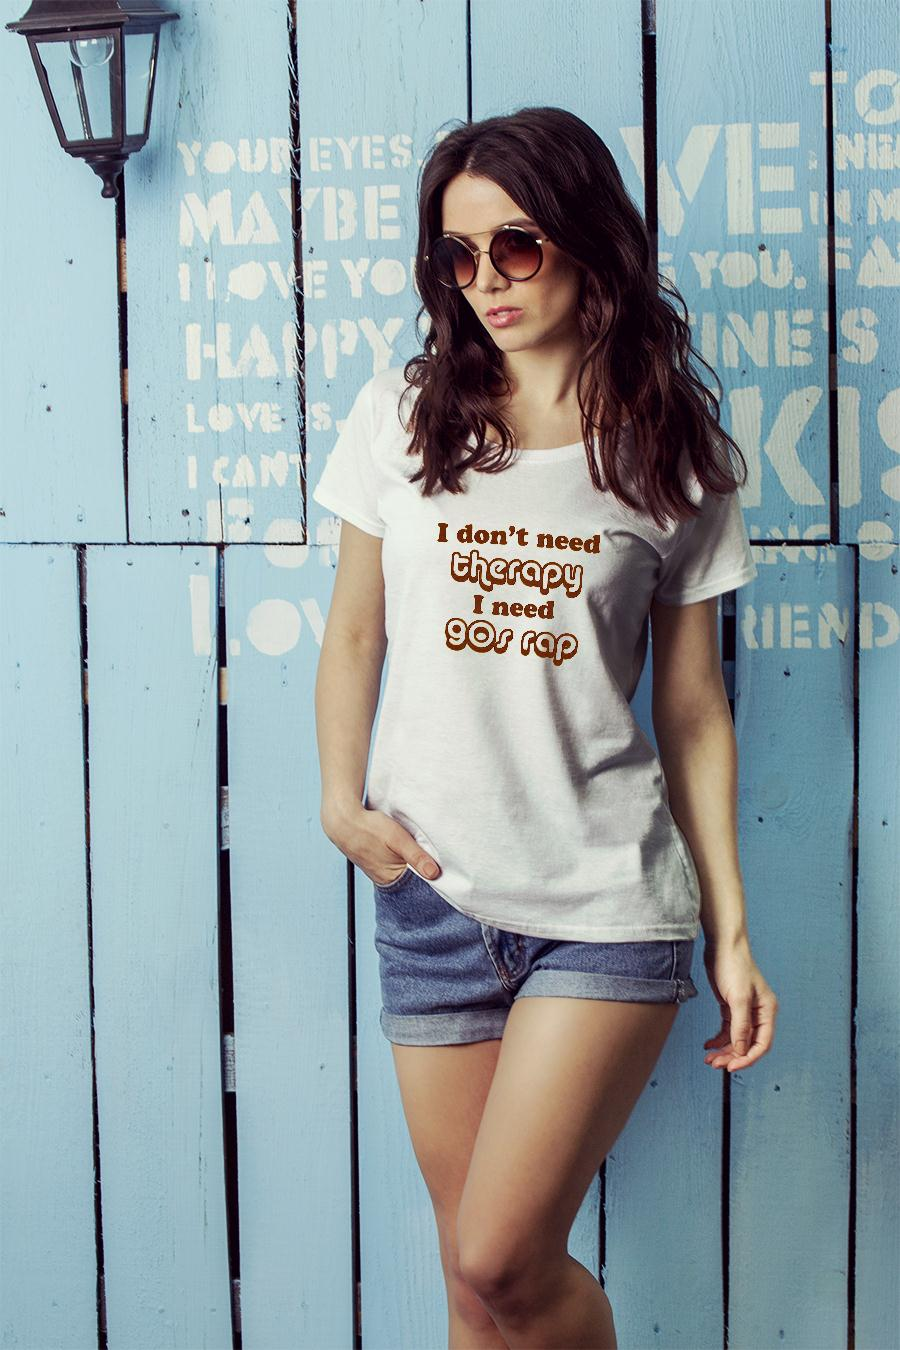 90s Rap I don't need therapy I need 90s rap shirt ladies tee official